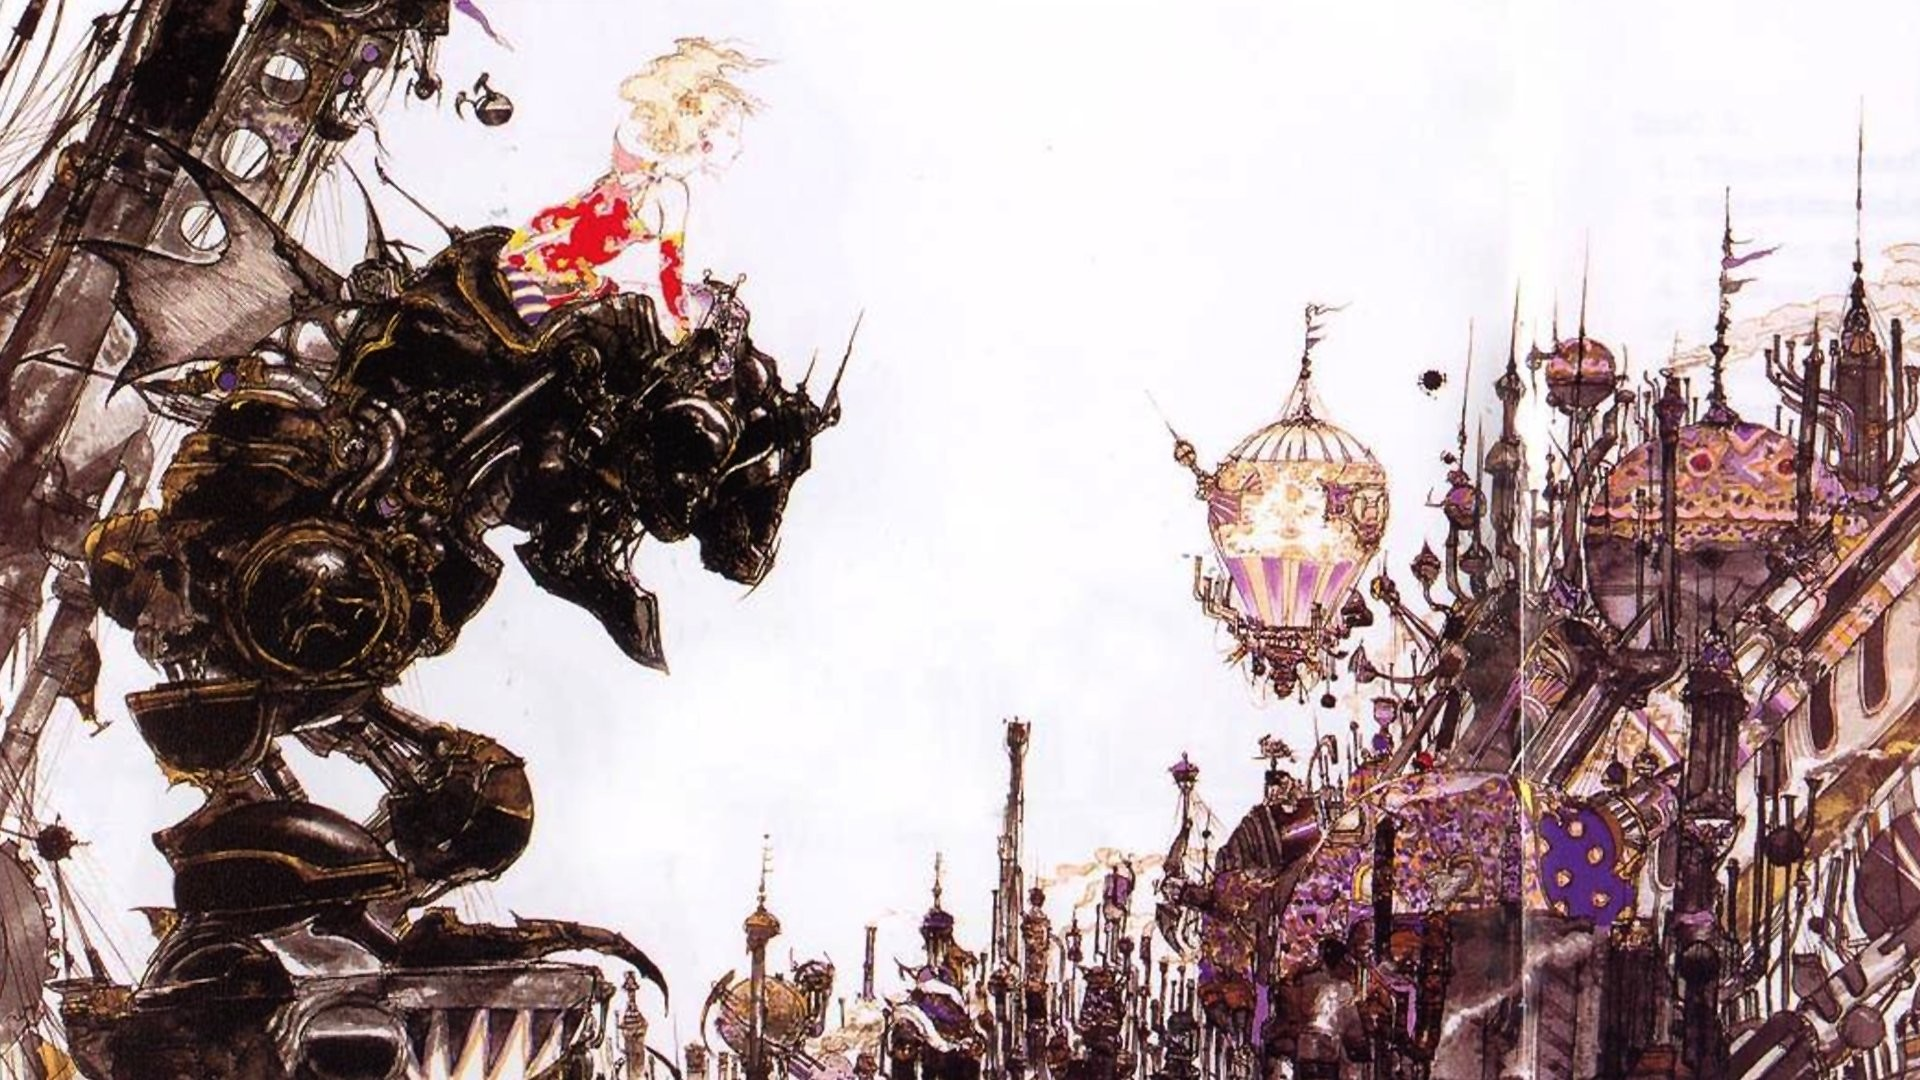 1920x1080 HD Wallpaper | Background ID:599075.  Video Game Final Fantasy VI.  2 Like. Favorite